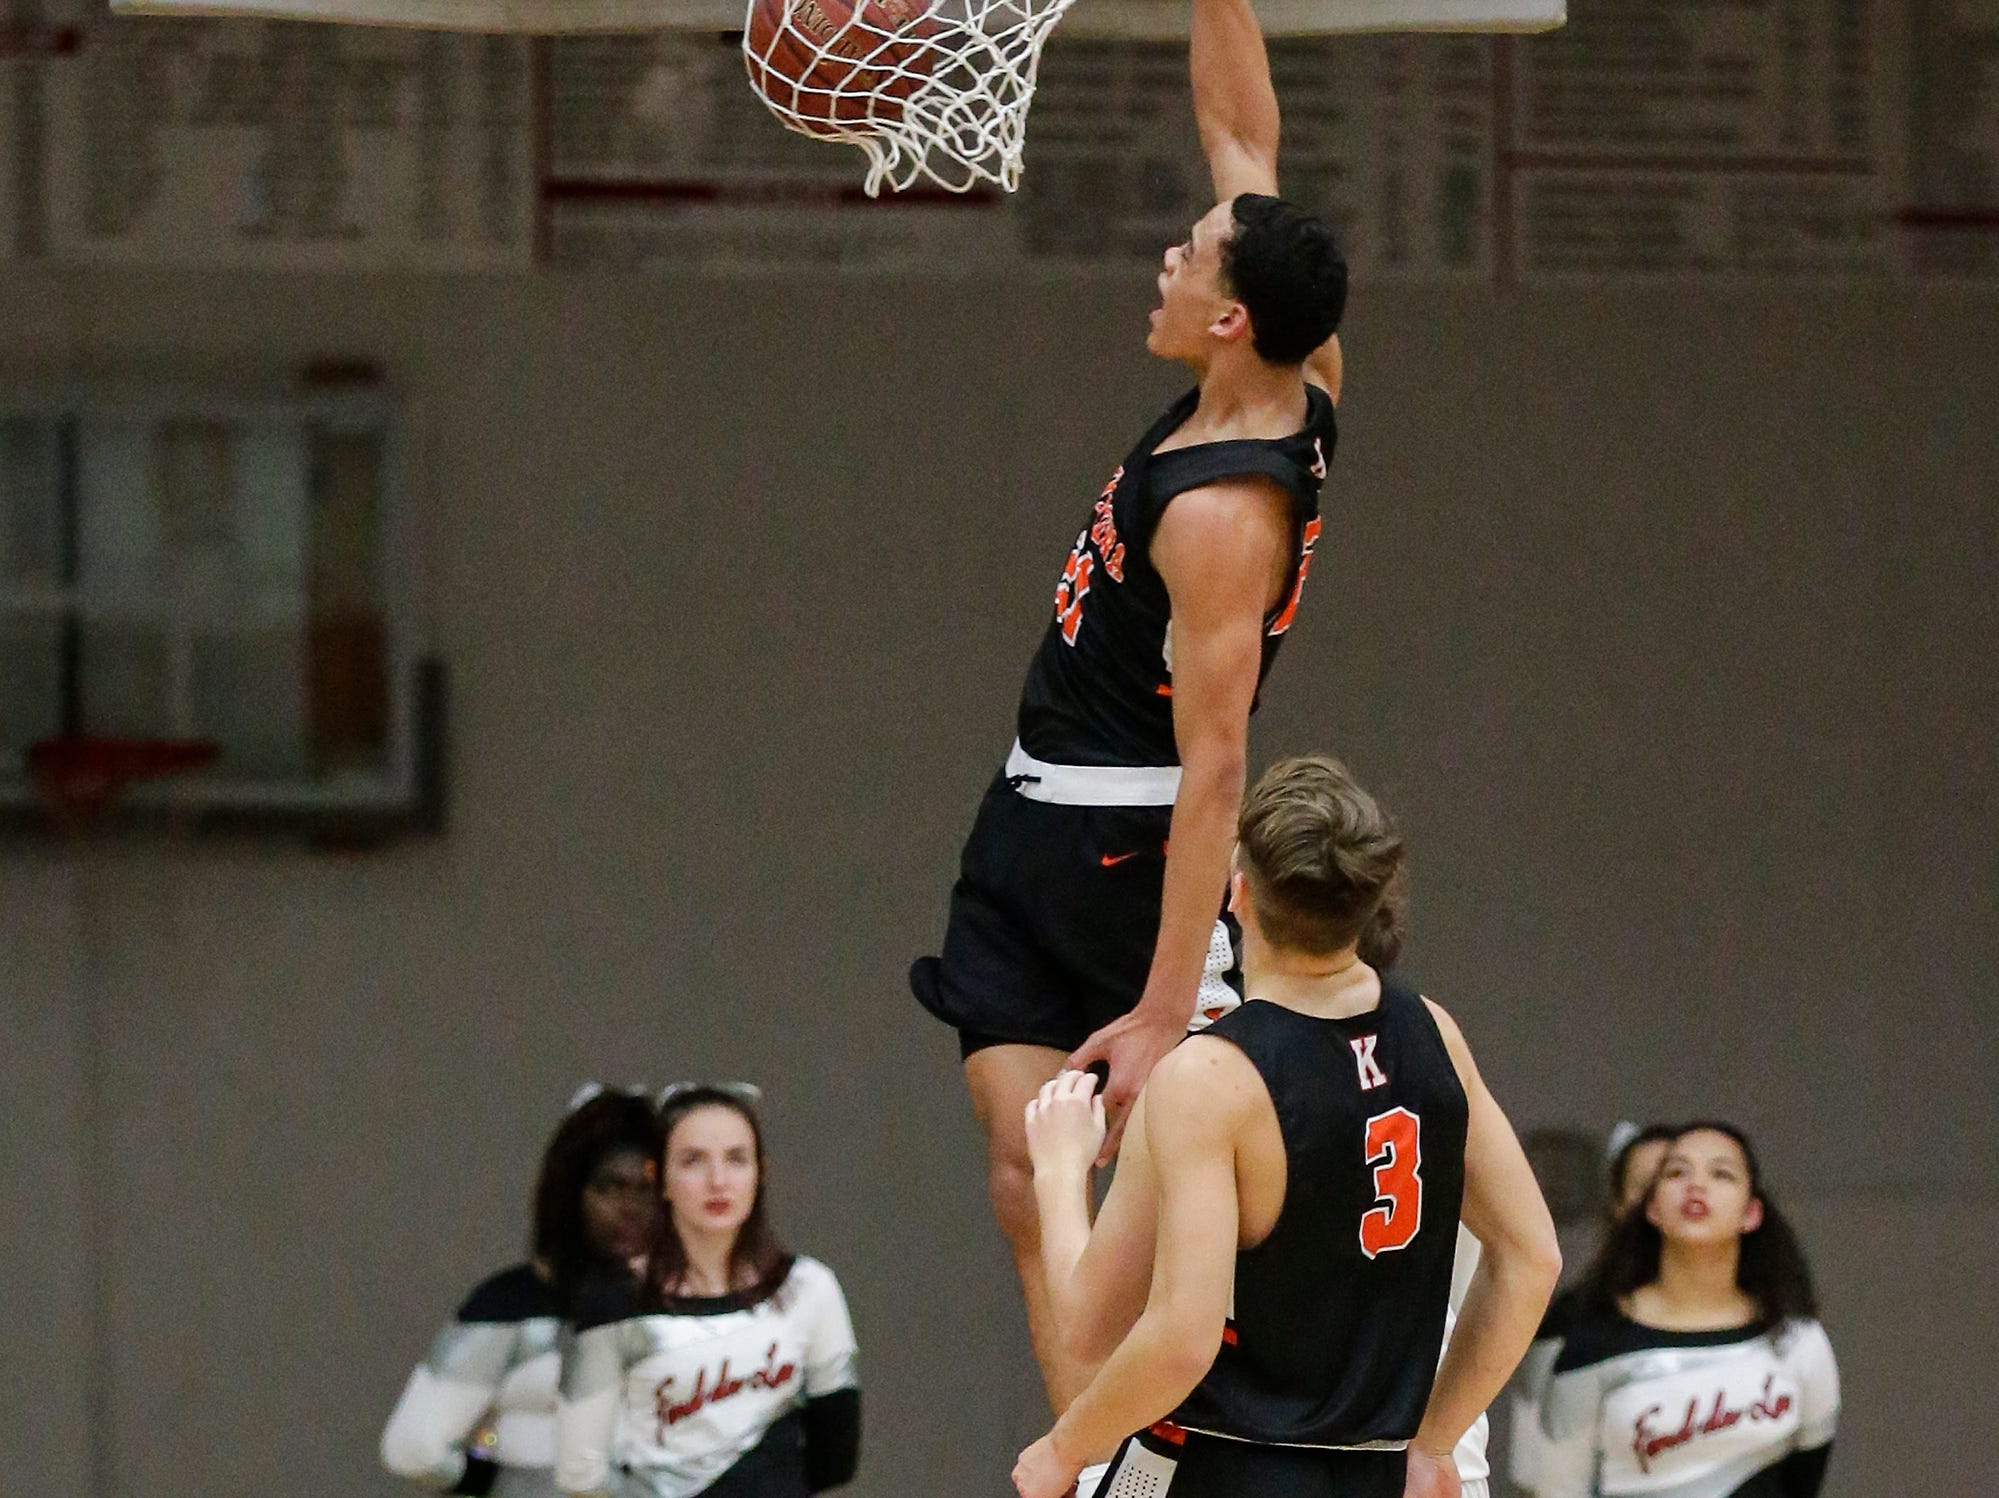 Kaukauna High School boys basketball's Donovan Ivory dunks the ball after a steal from Fond du Lac High School during their game Tuesday, November 27, 2018 in Fond du Lac. Doug Raflik/USA TODAY NETWORK-Wisconsin